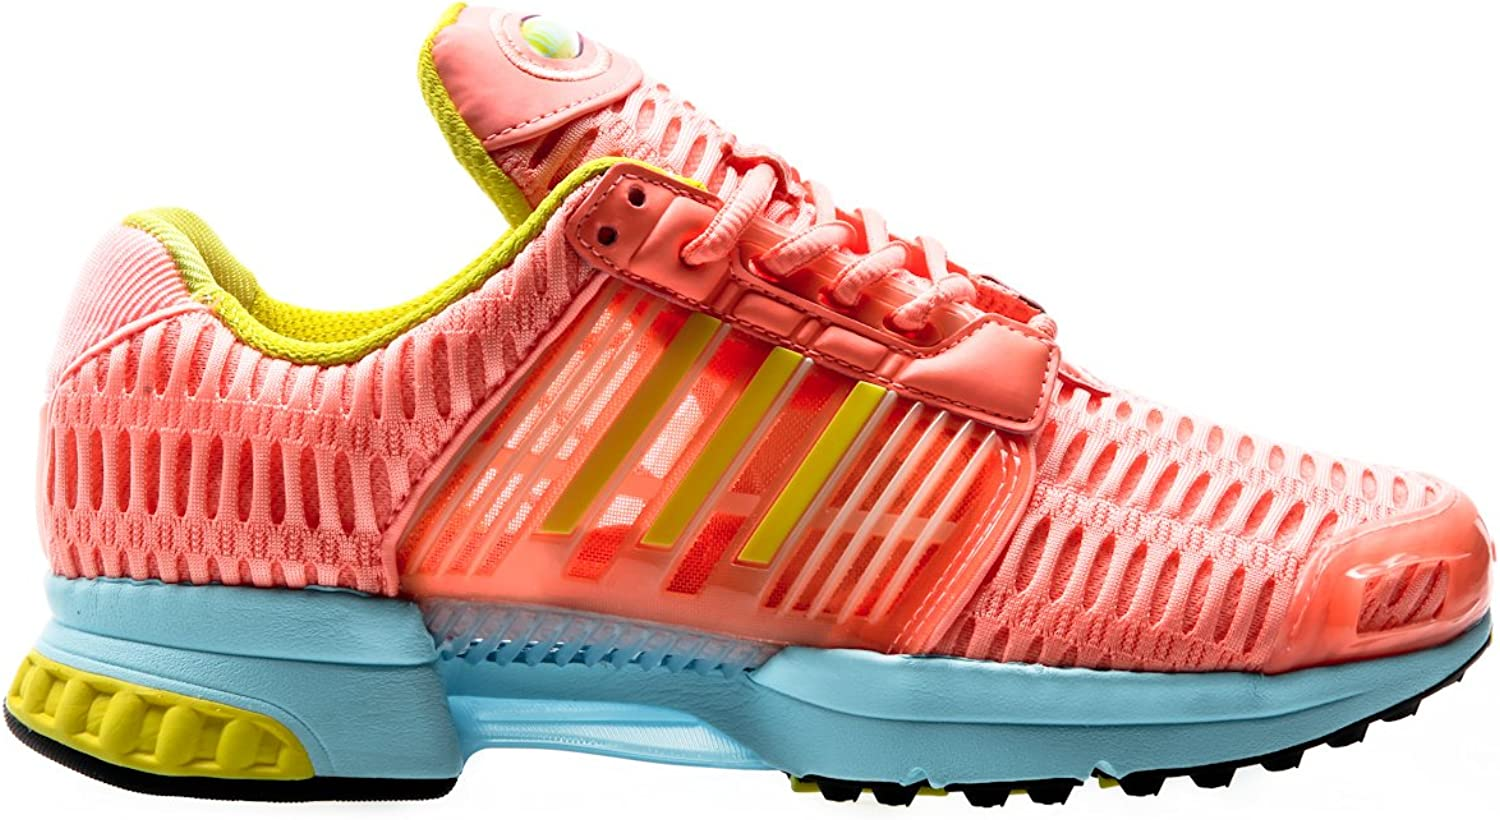 adidas Originals Climacool 1, Sun Glow Bright Yellow Frozen